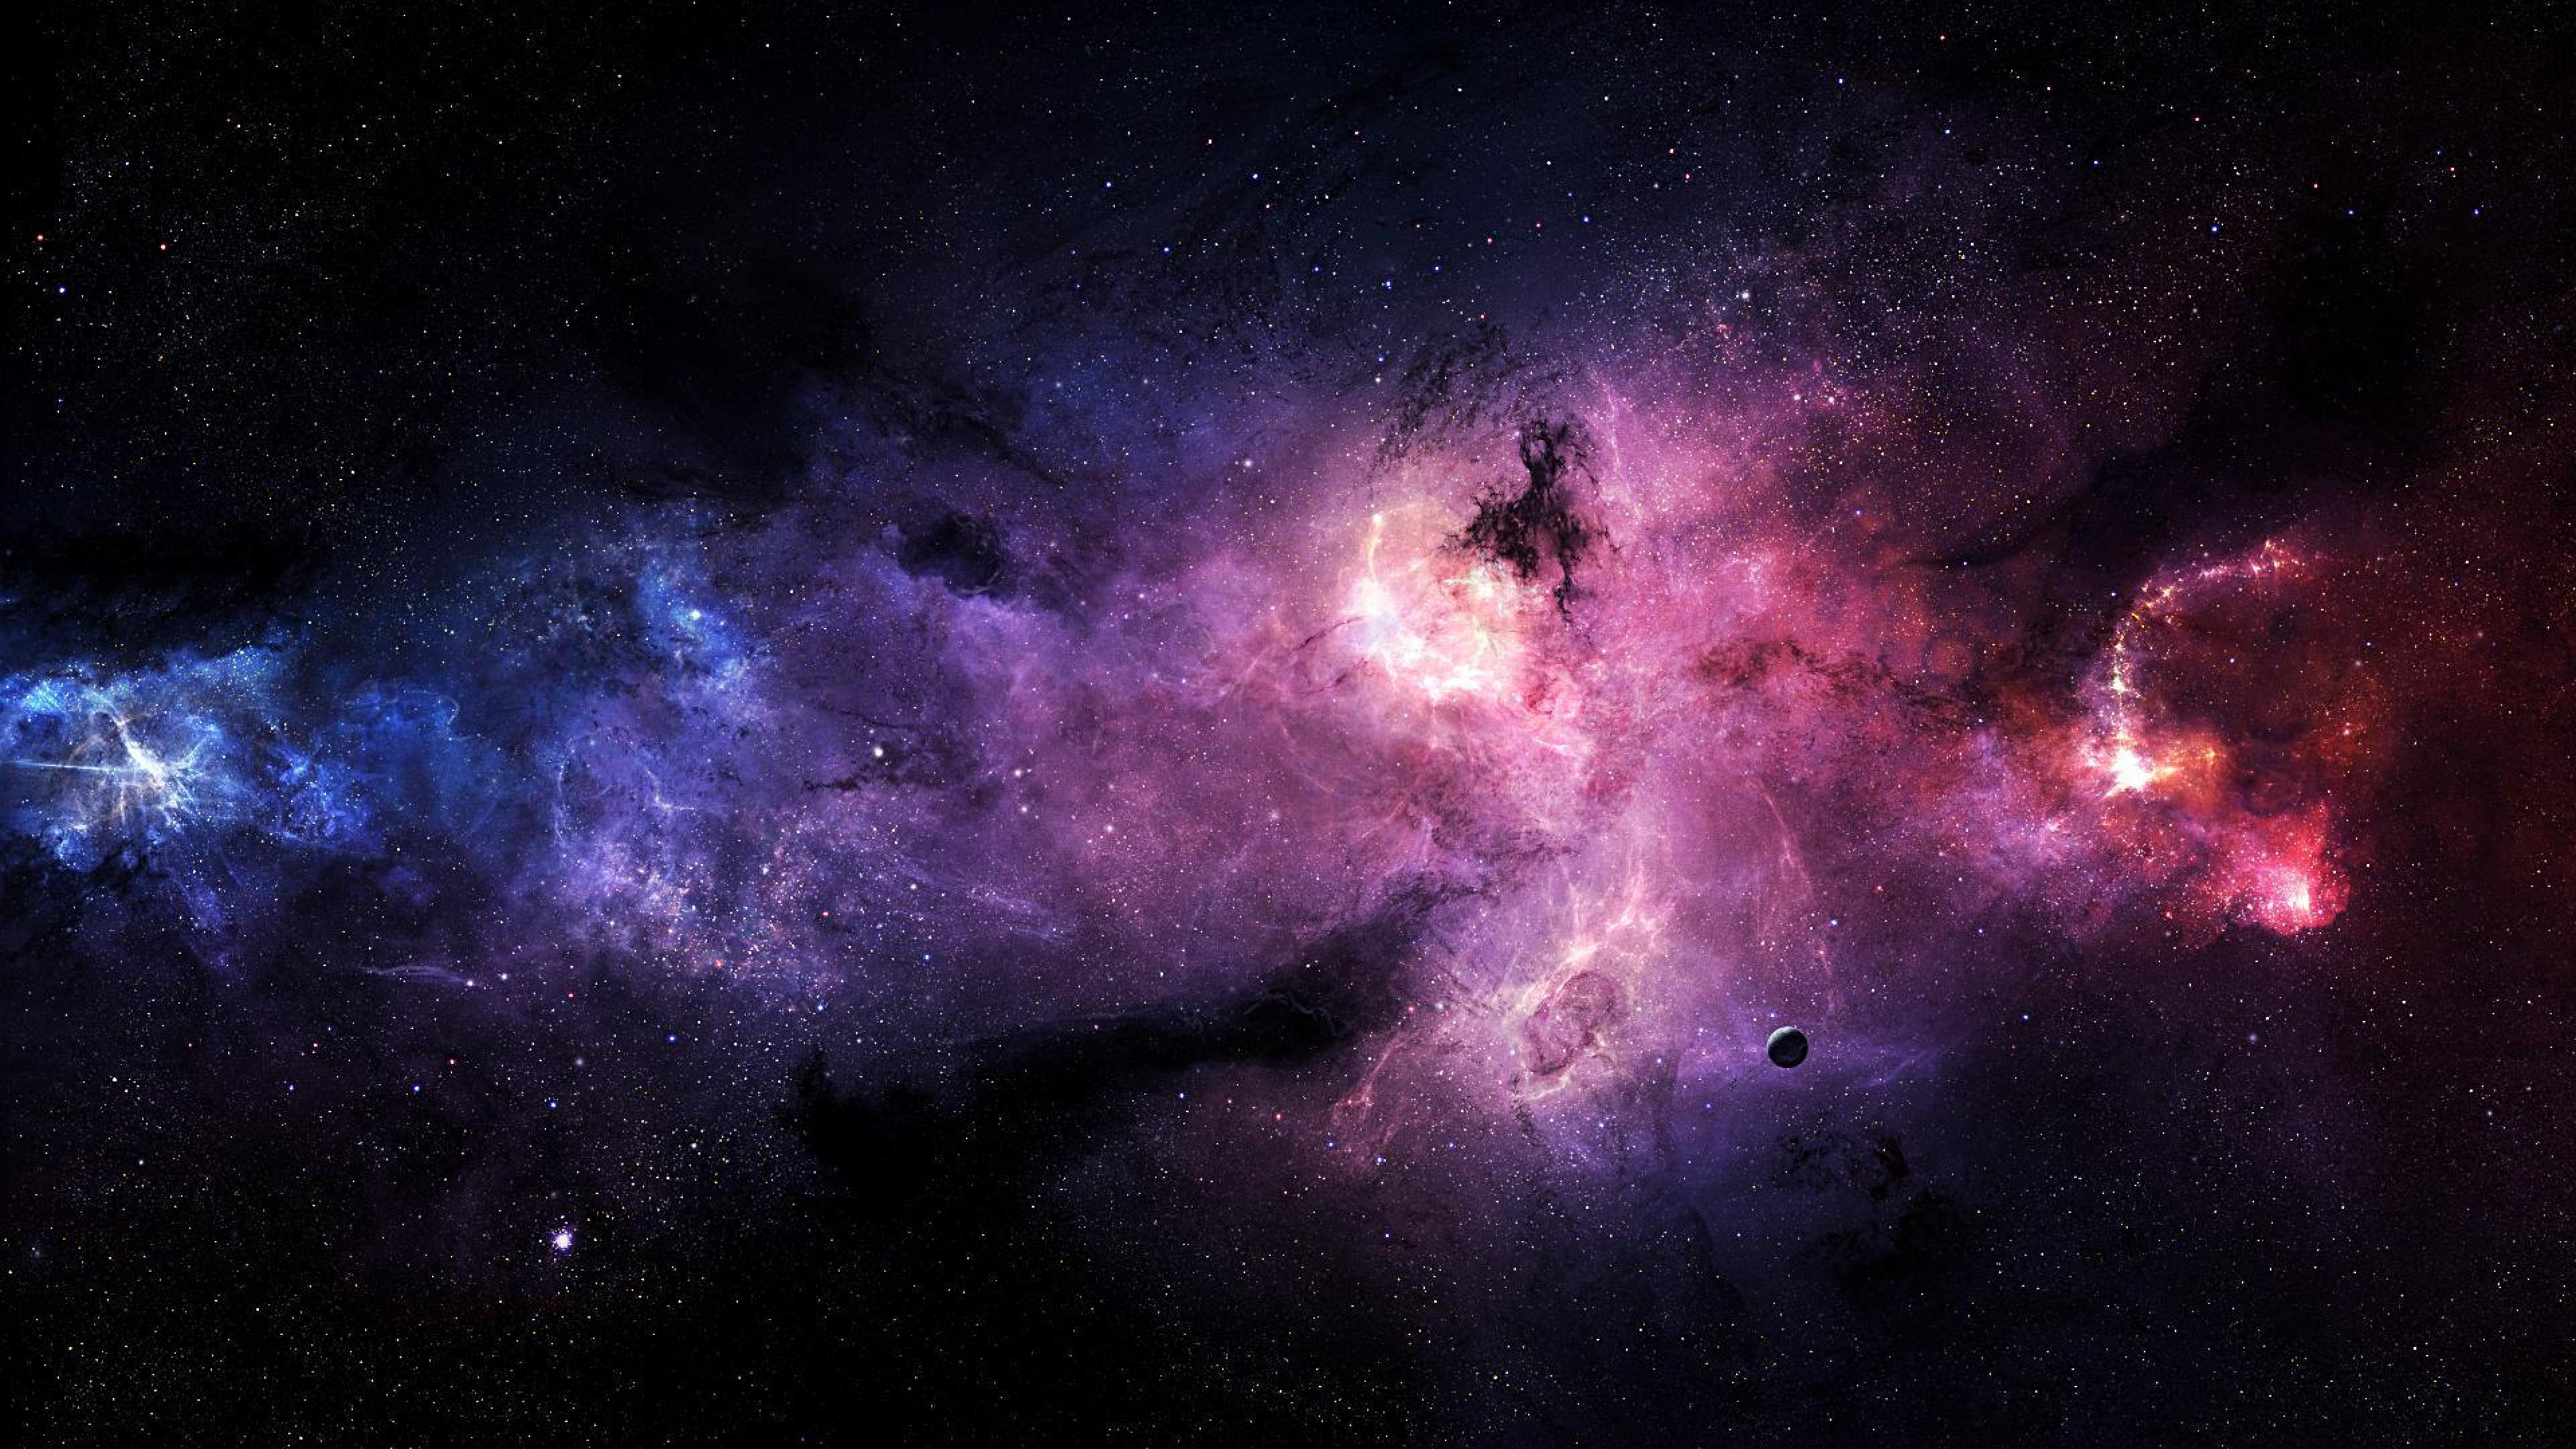 Real Space Wallpaper Mobile with High Definition Wallpaper.